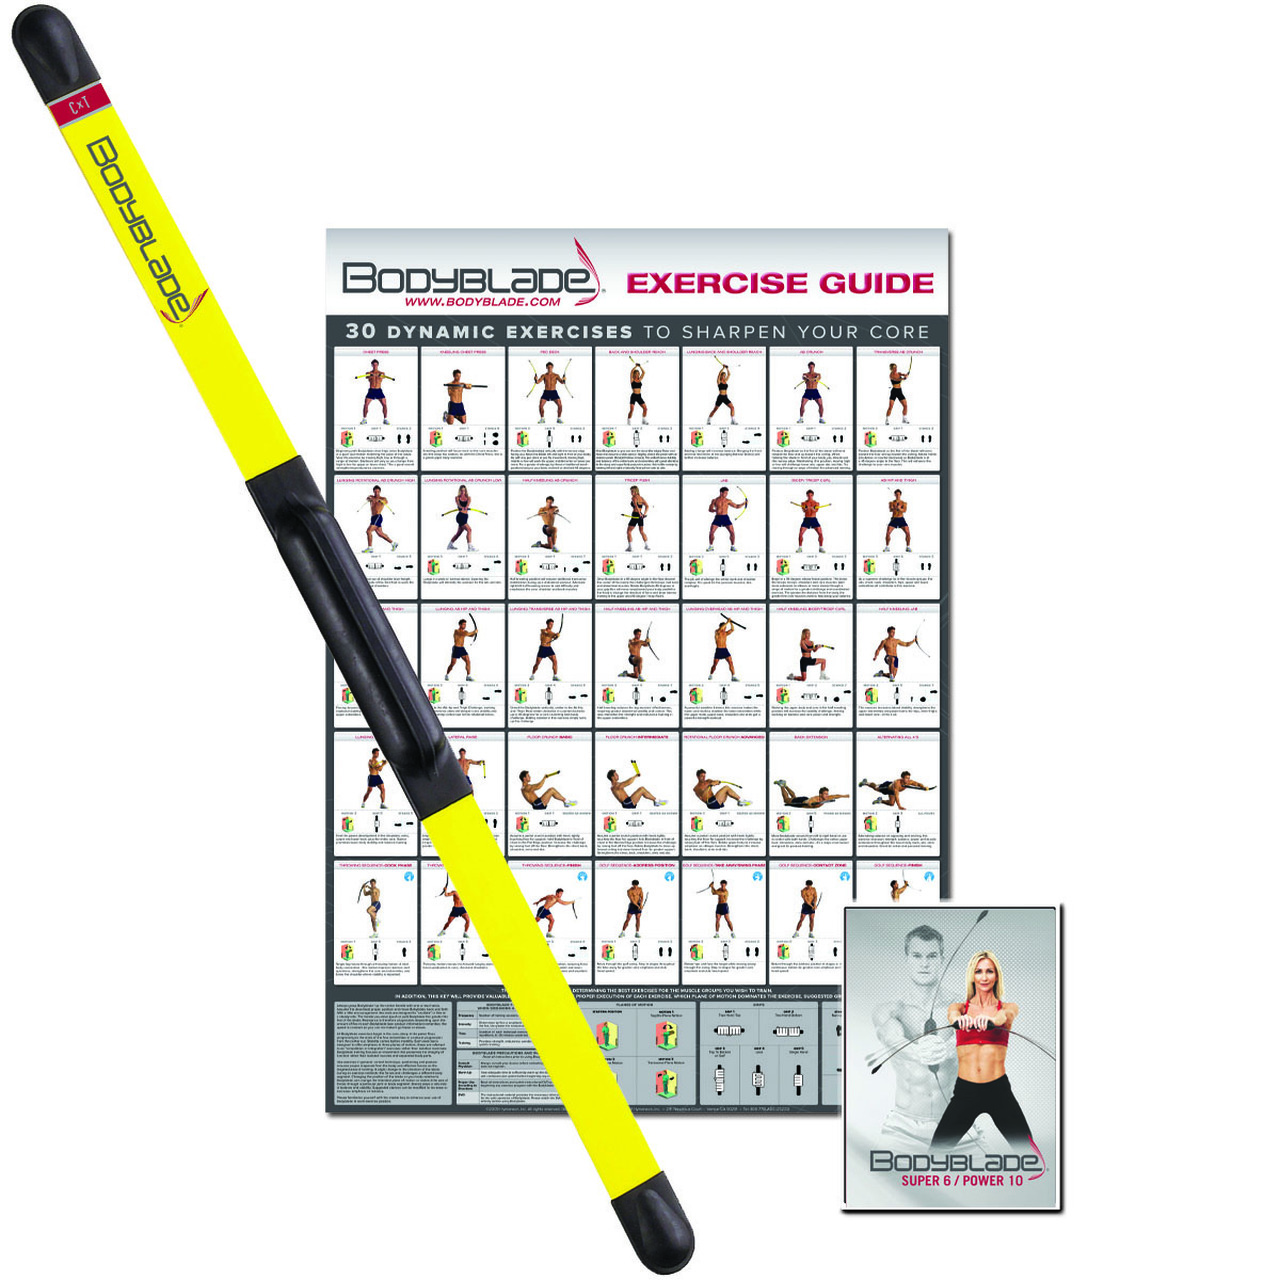 Bodyblade¨ CxT with workout and instructional video, yellow